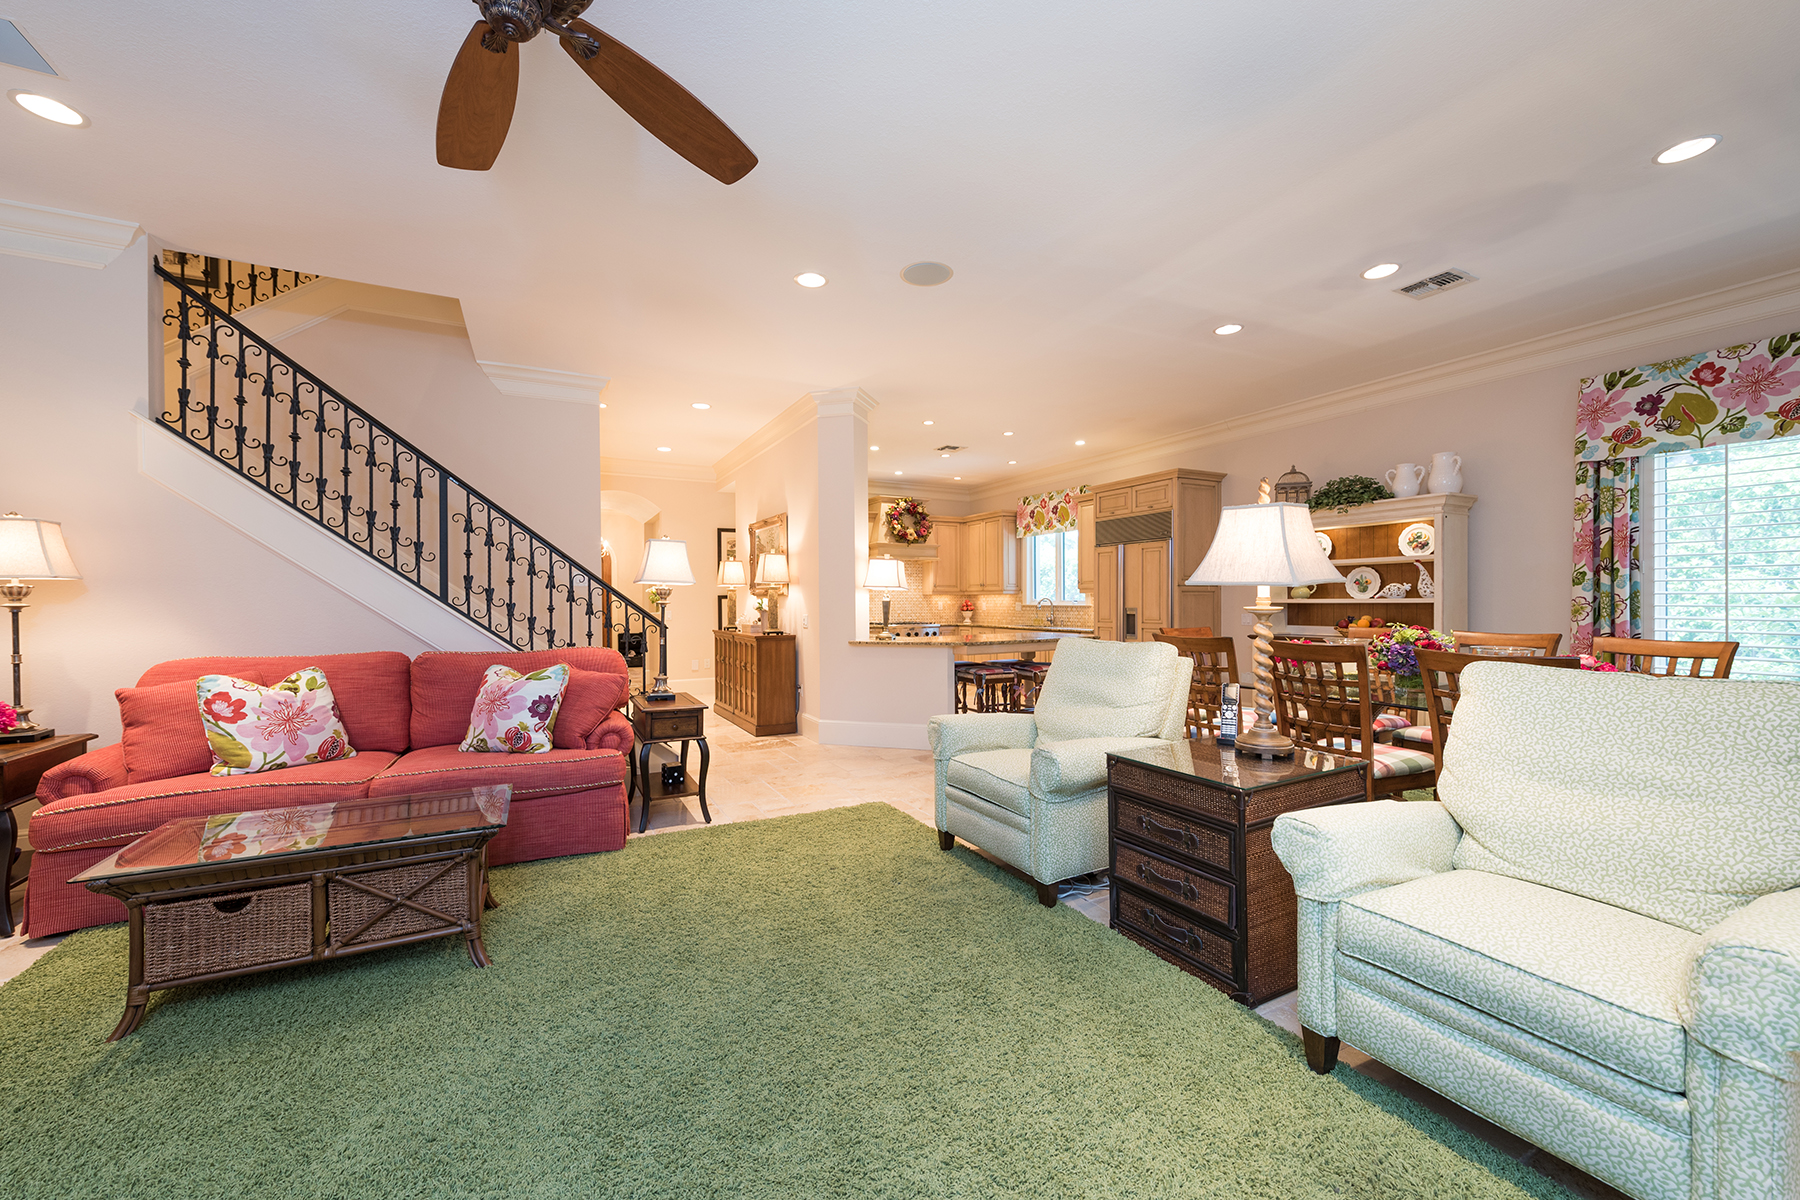 Additional photo for property listing at OLDE NAPLES 272  1st Ave  S,  Naples, Florida 34102 United States